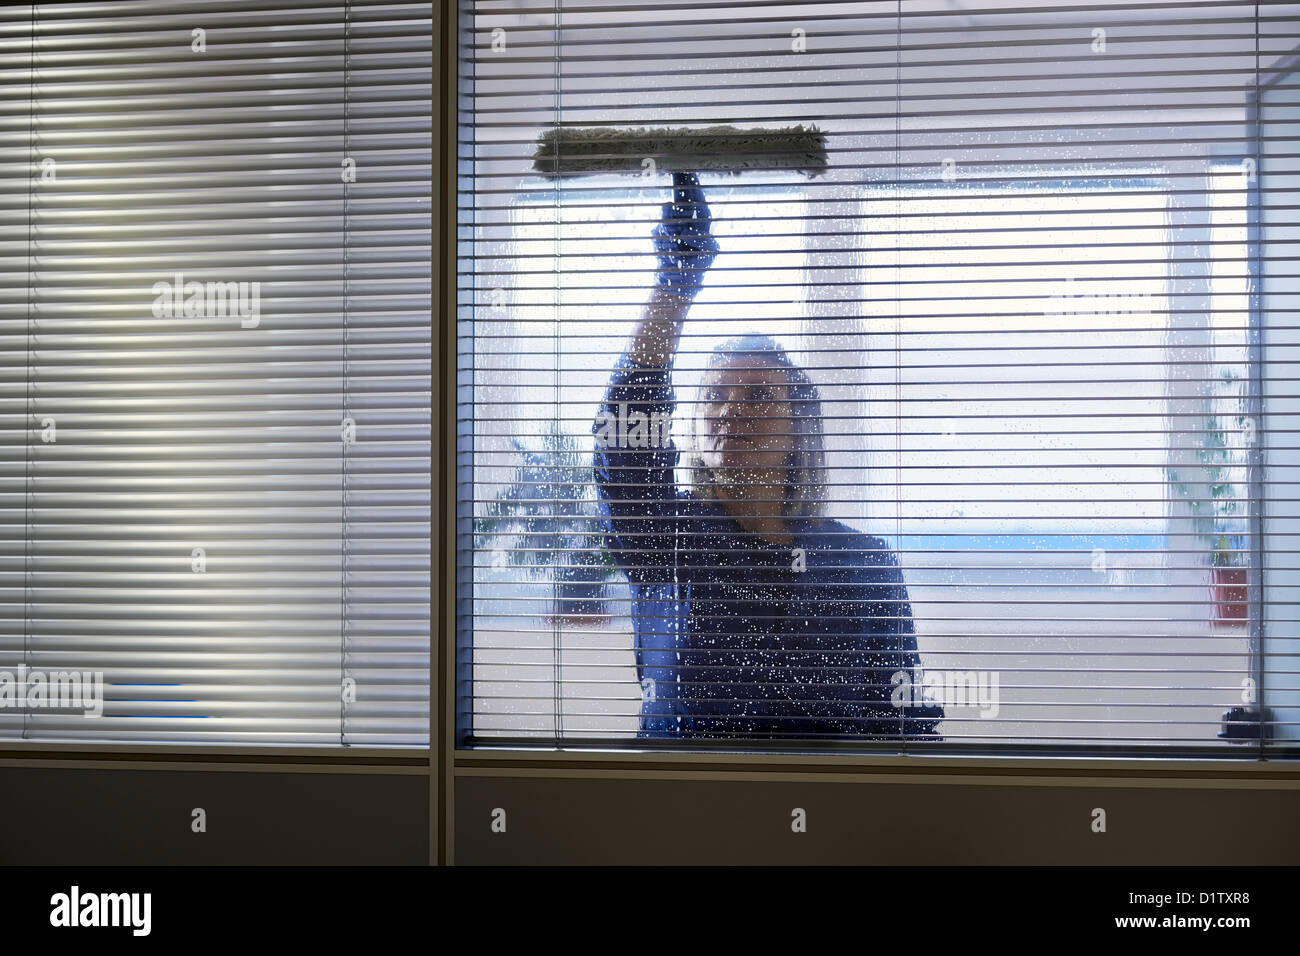 Woman at work, professional female cleaner cleaning and wiping window in office with detergent - Stock Image